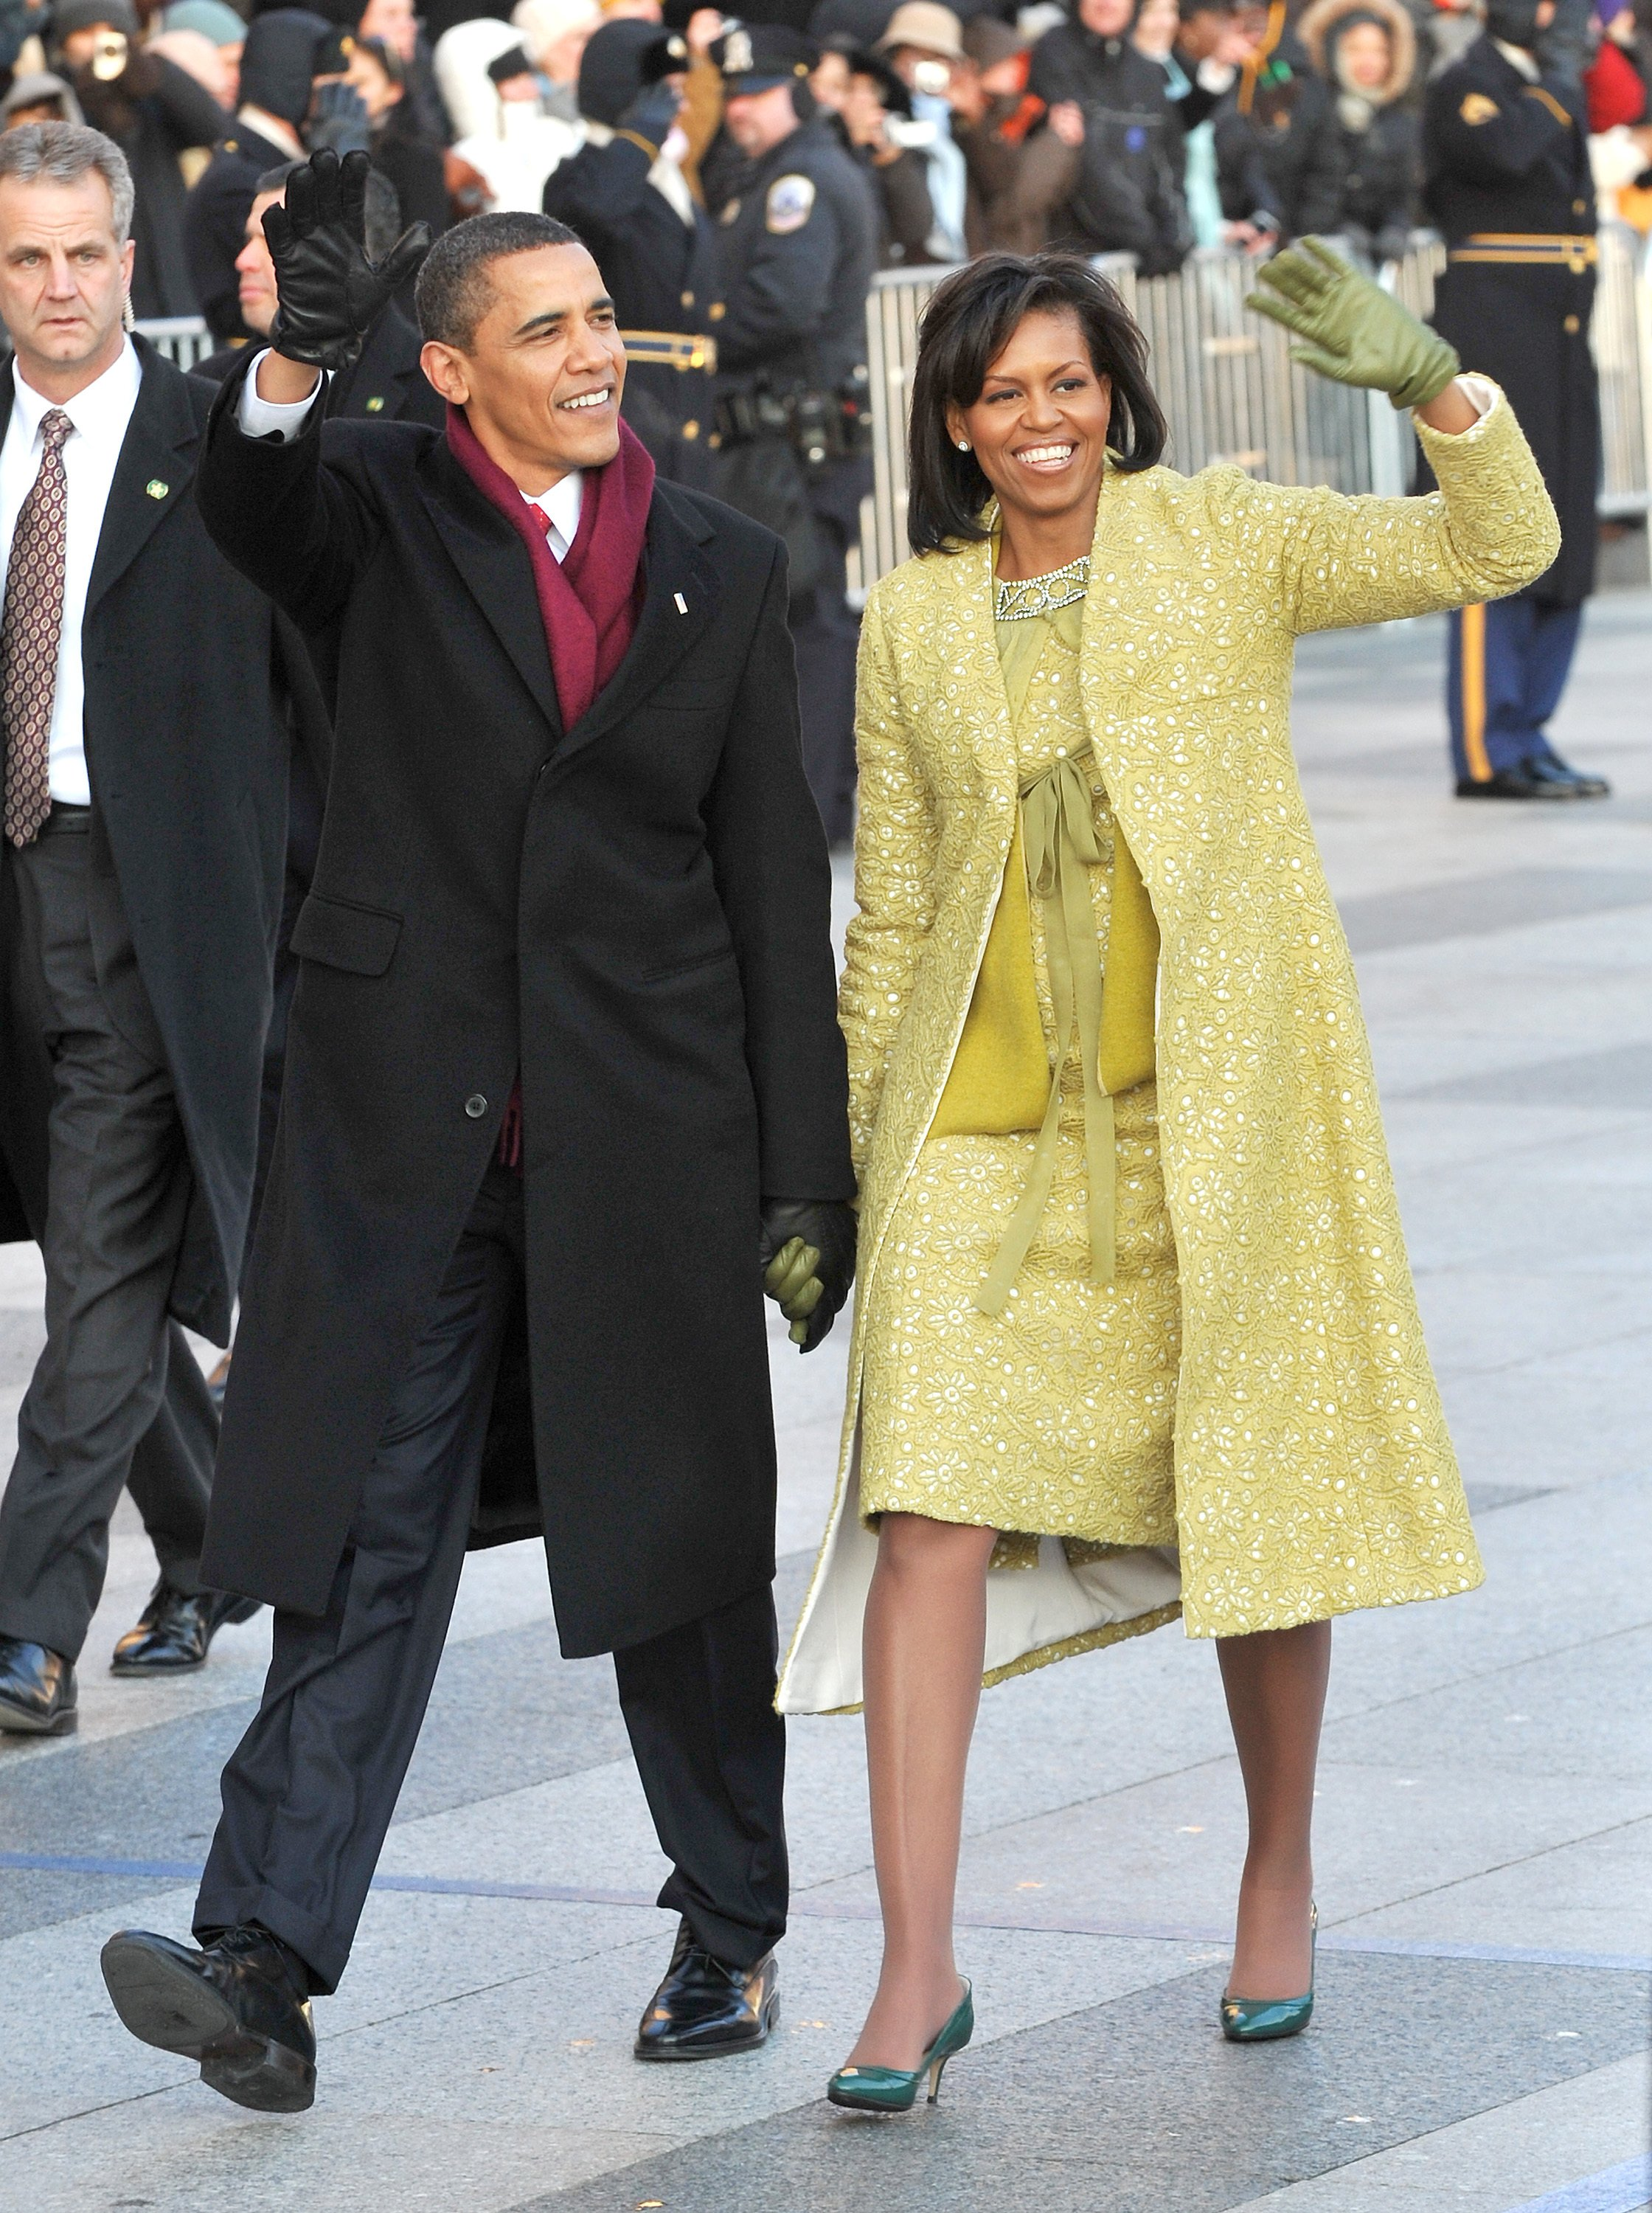 Michelle and Barack Obama during the inaugural parade in Washington, DC in January 2009. | Photo: Getty Images